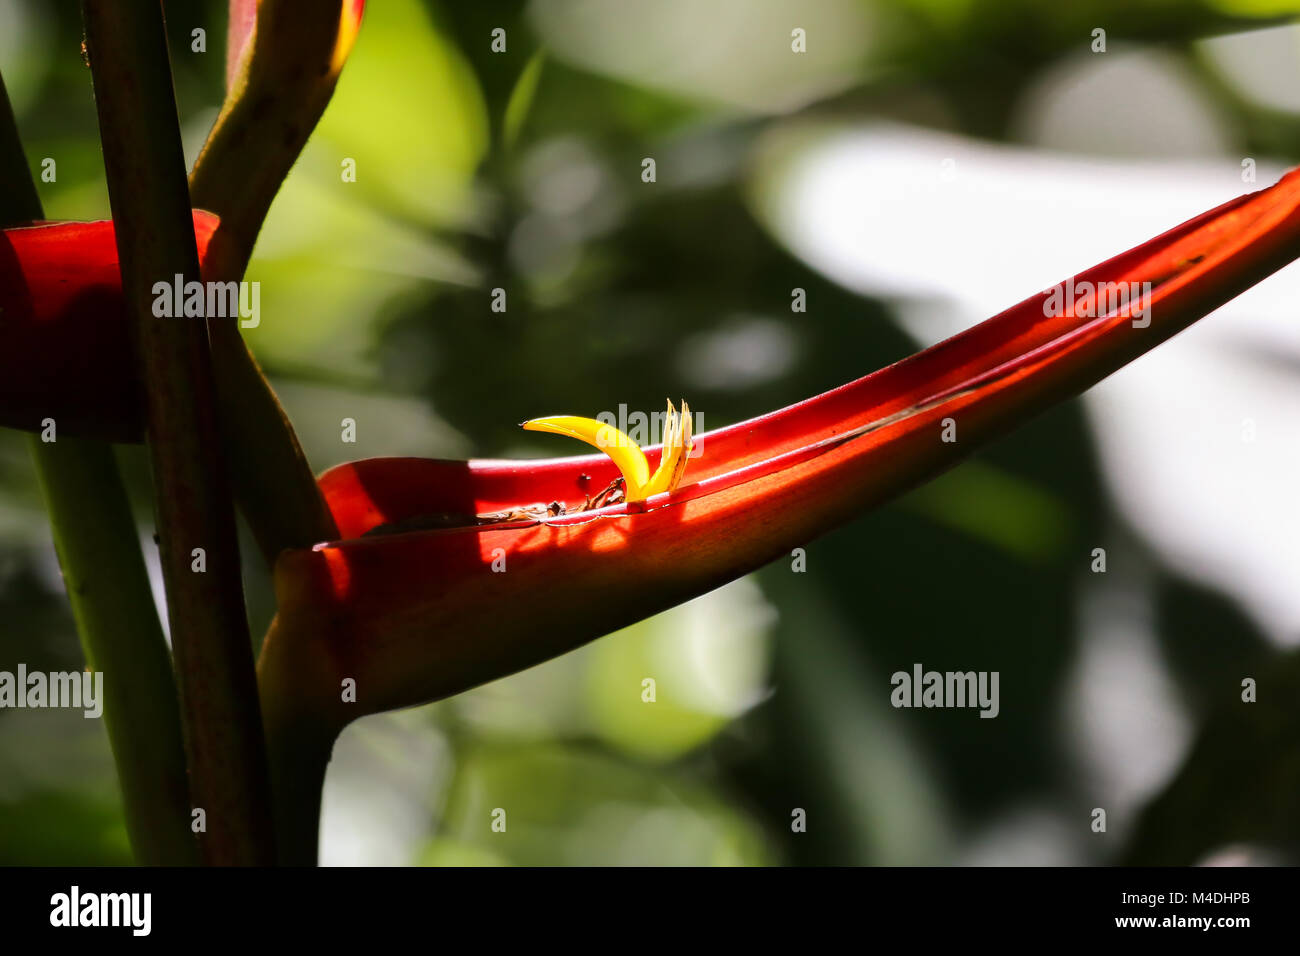 Heliconia in light - Stock Image